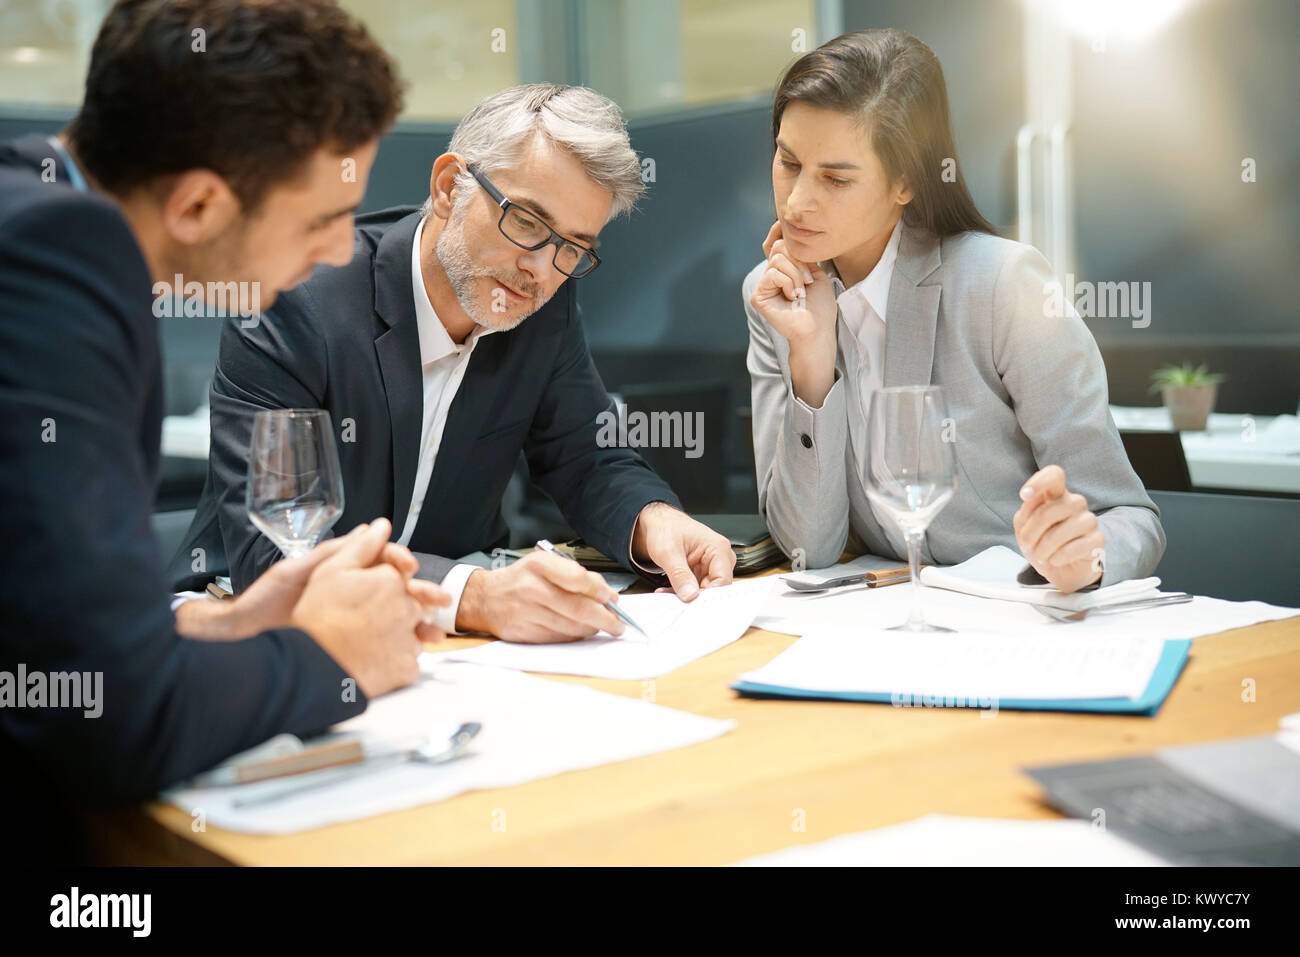 Executive people doing business report presentation in restaurant - Stock Image